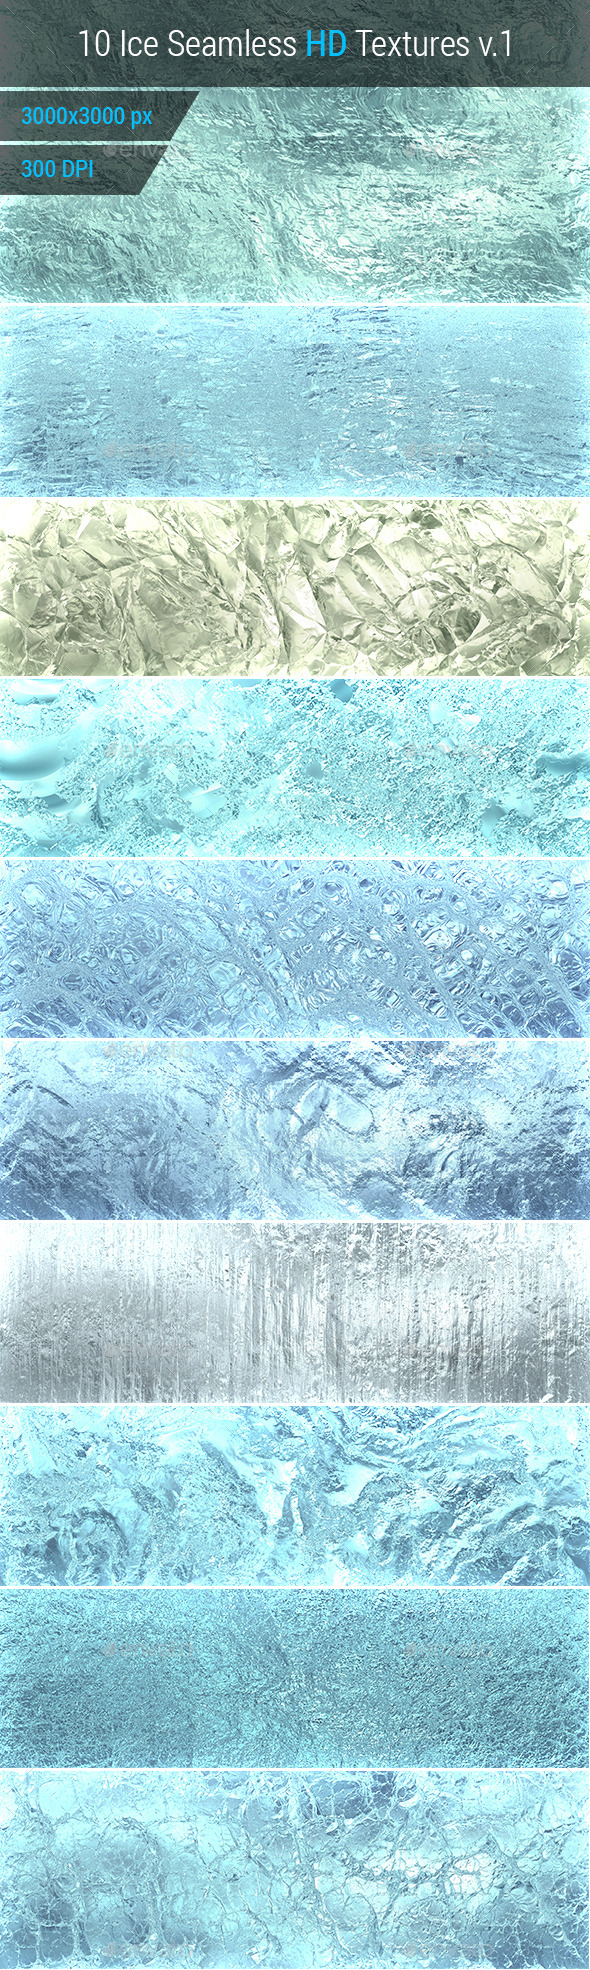 Ice Seamless and Tileable Background Texture v.1 - Nature Textures